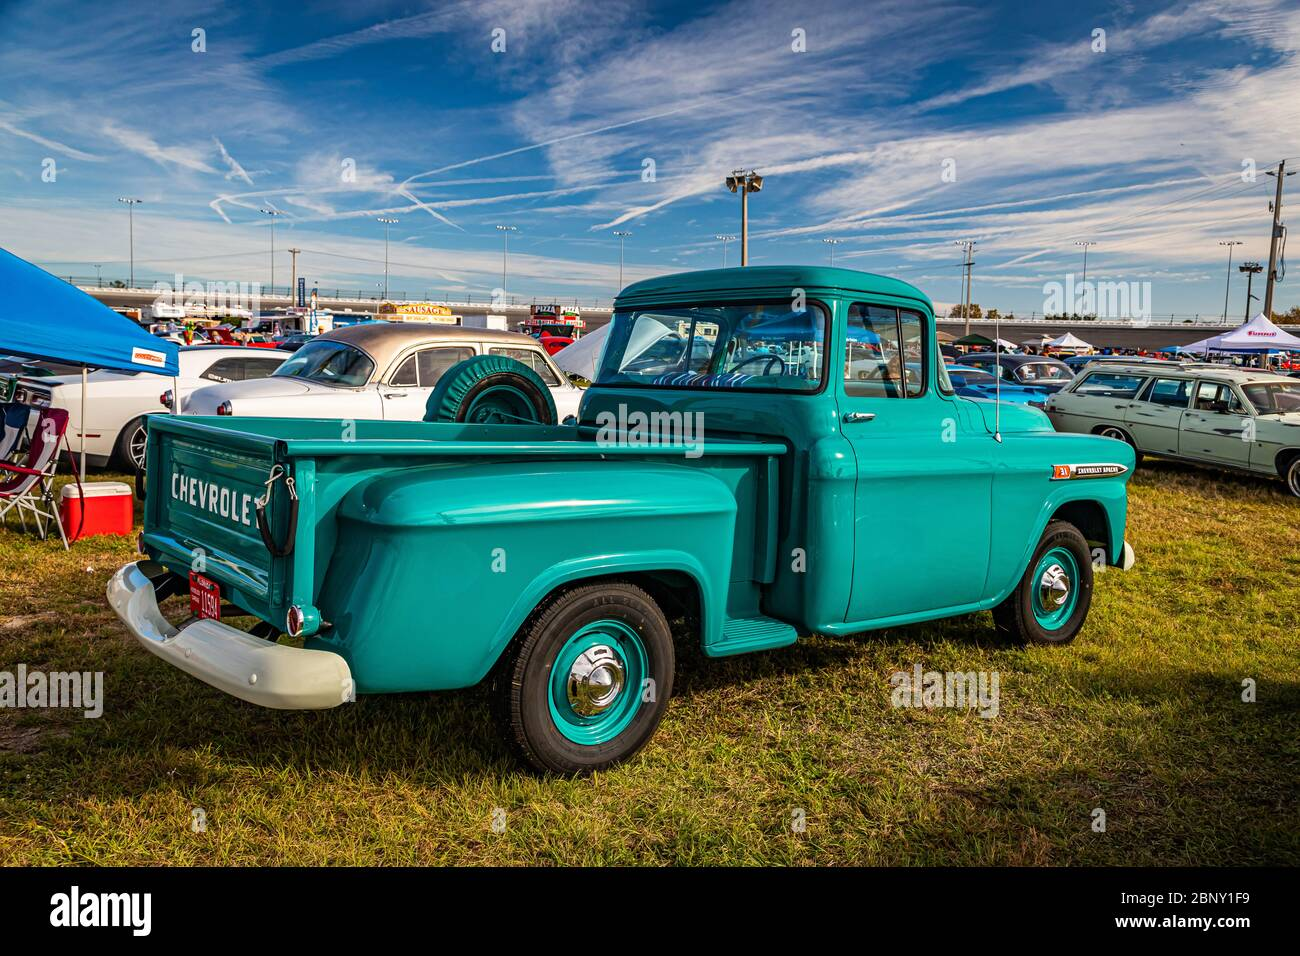 1959 Chevy Pickup Truck High Resolution Stock Photography And Images Alamy